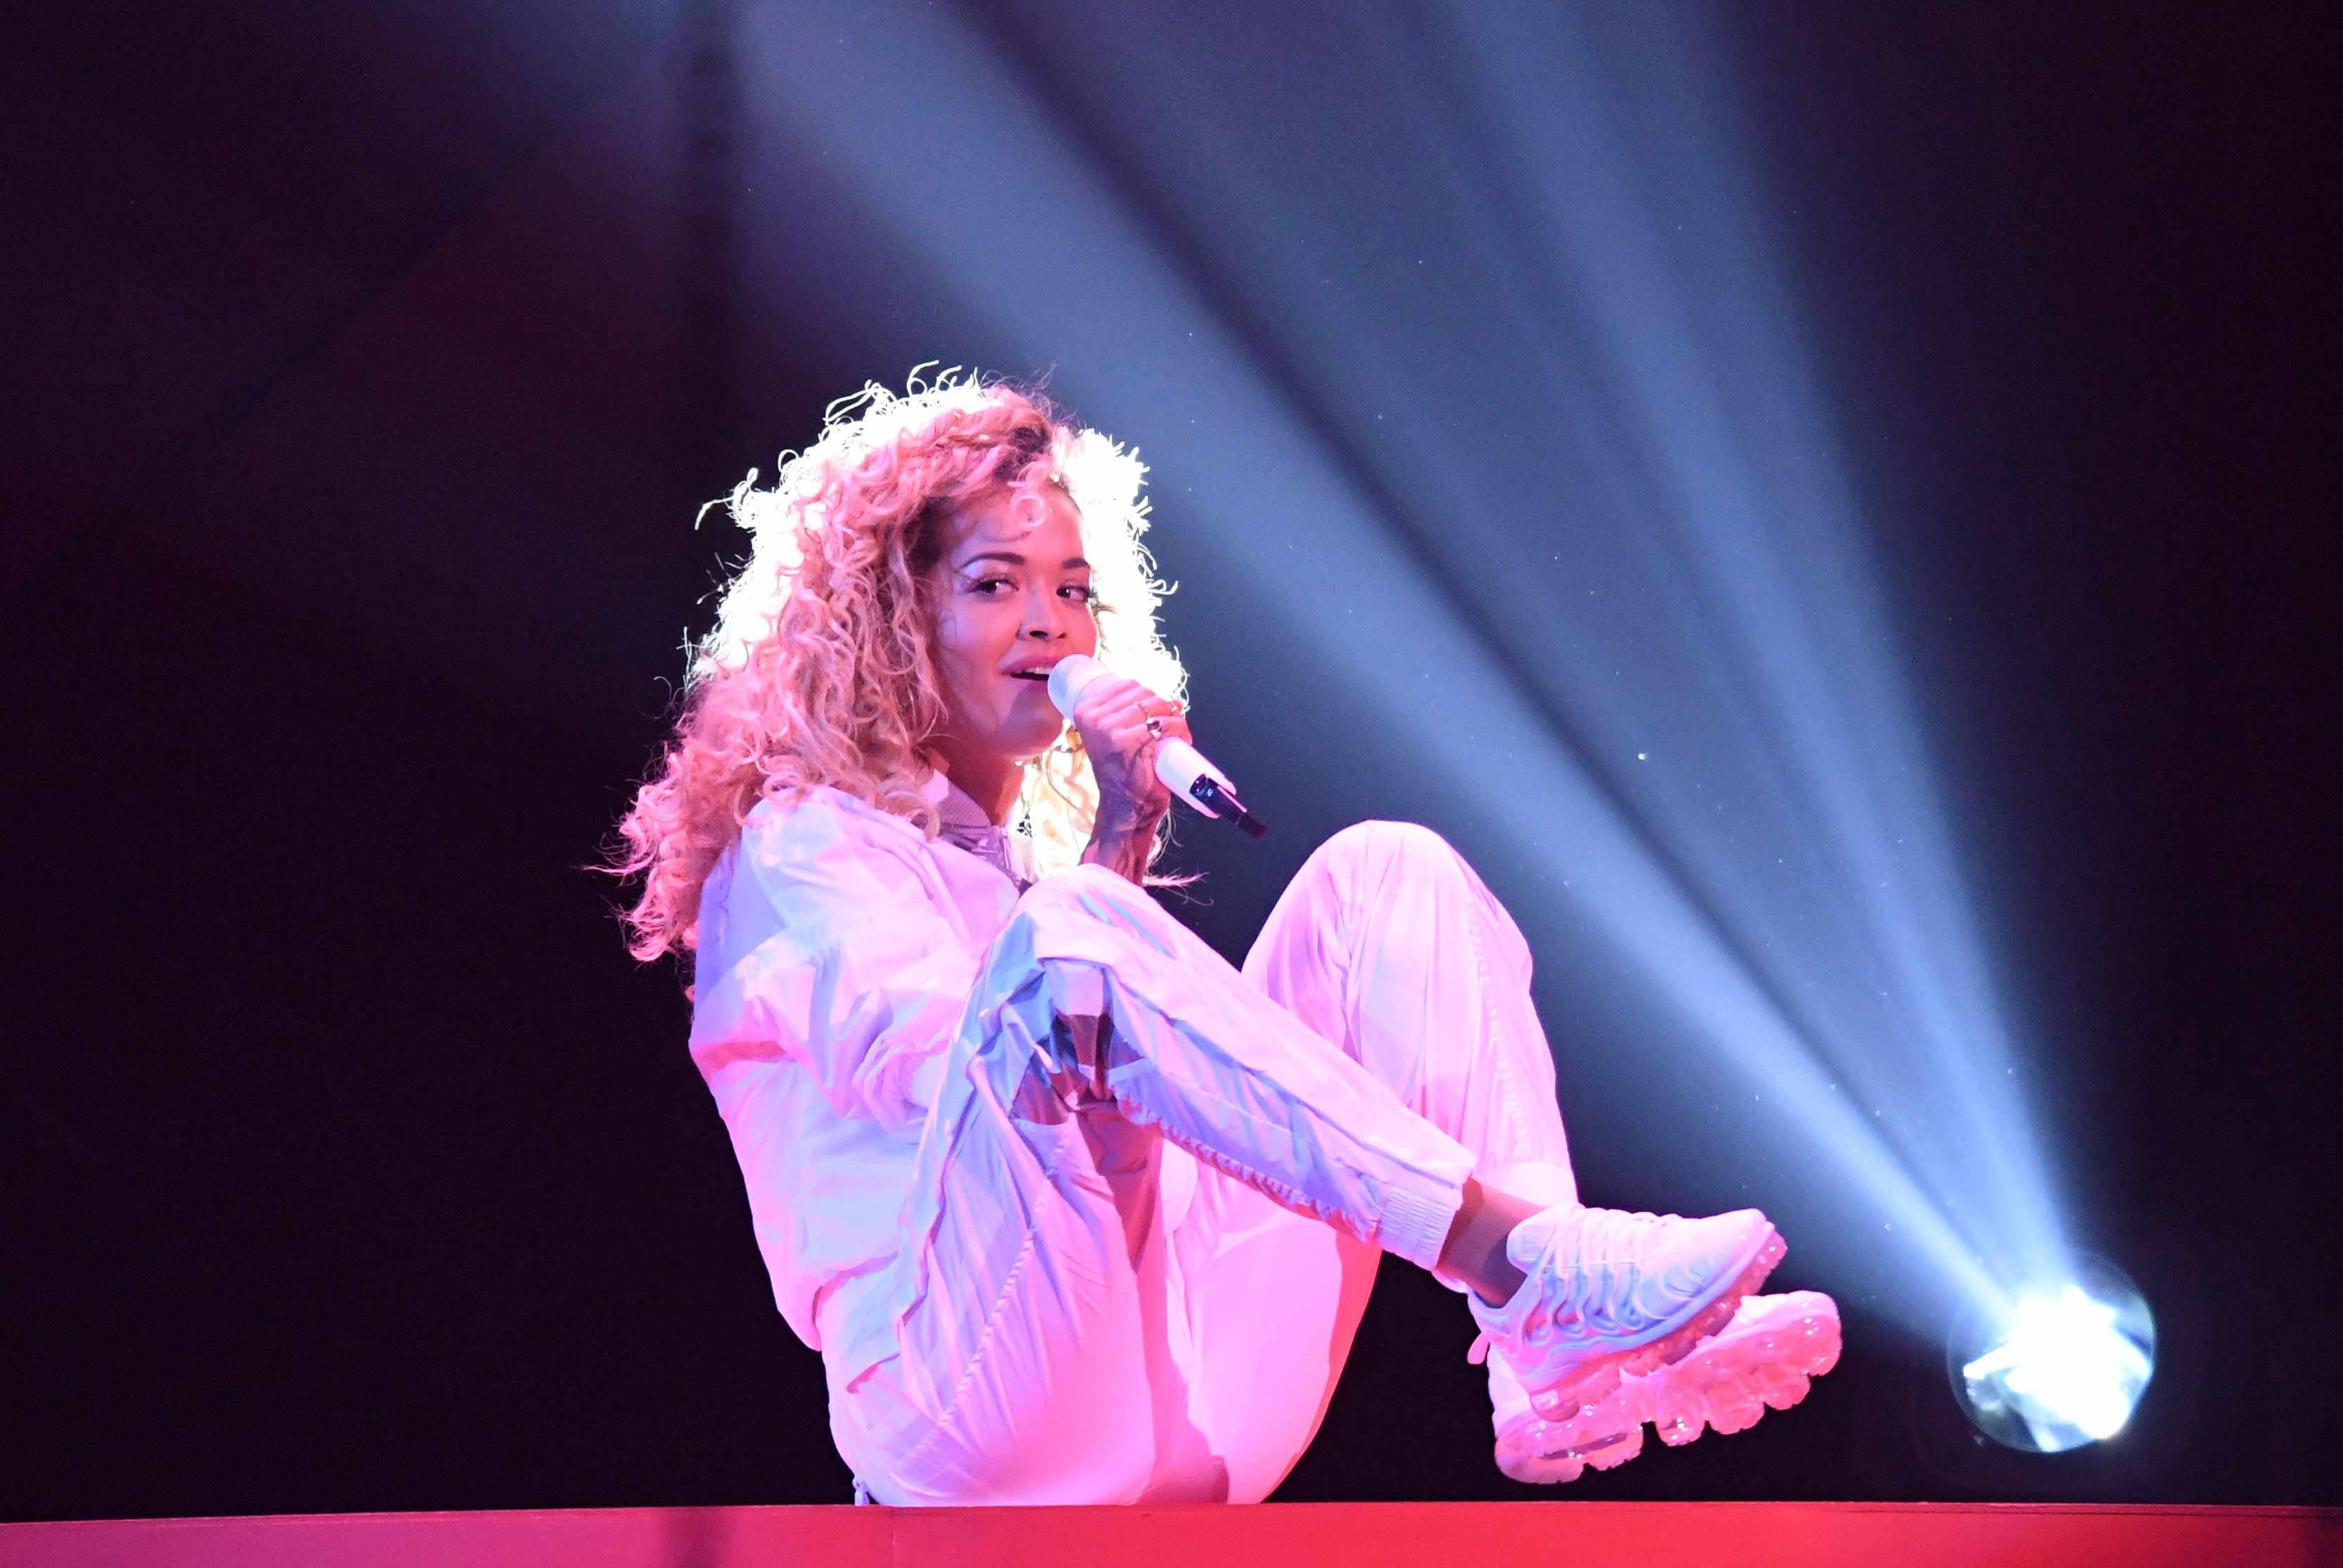 Rita Ora performs at the BRIT Awards 2018